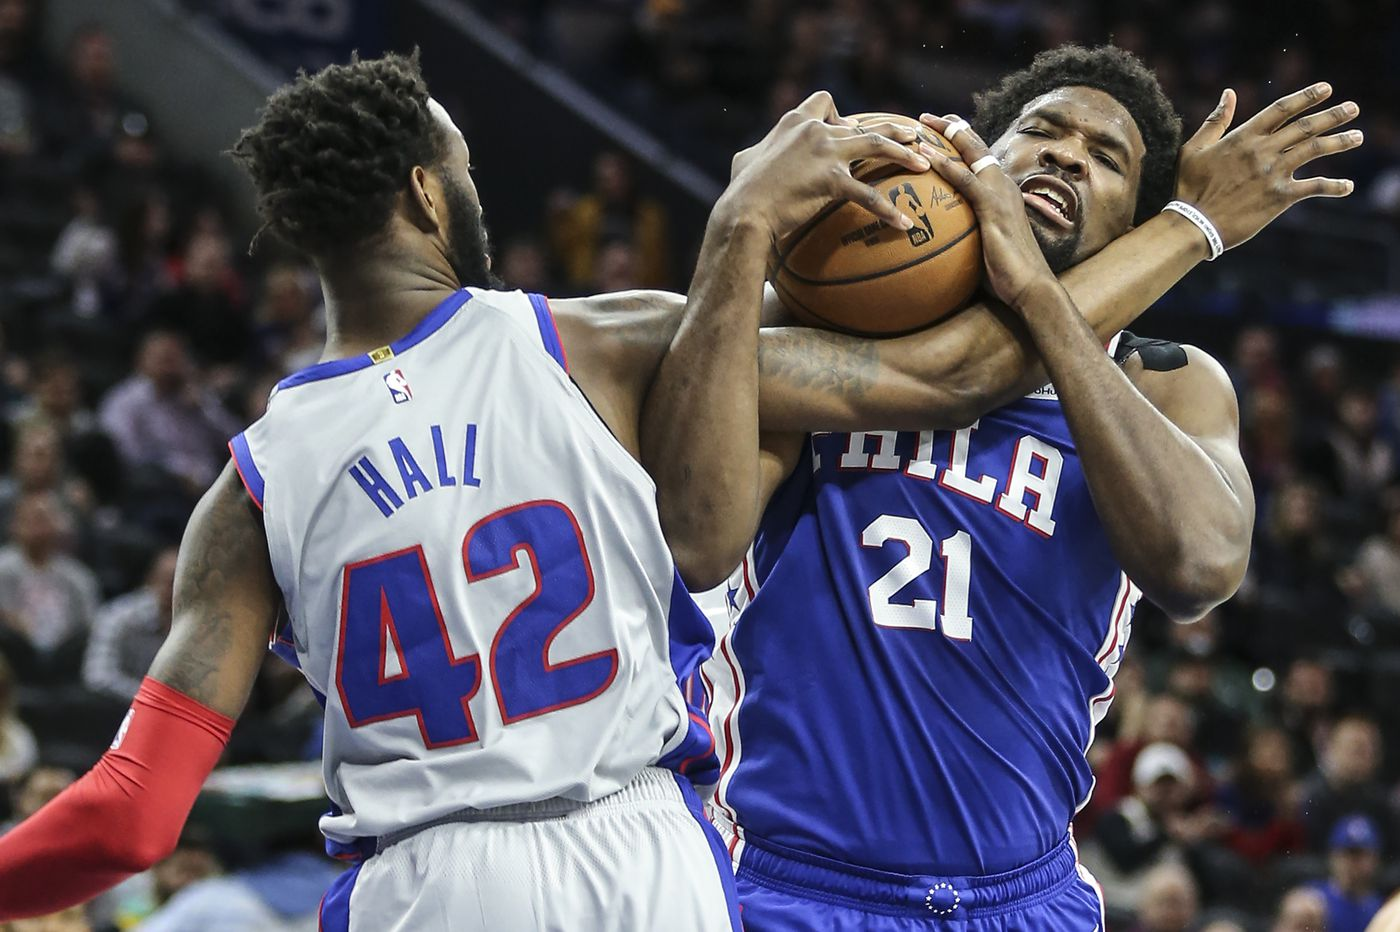 Joel Embiid, Al Horford too much for woeful Pistons as Sixers roll, 124-106